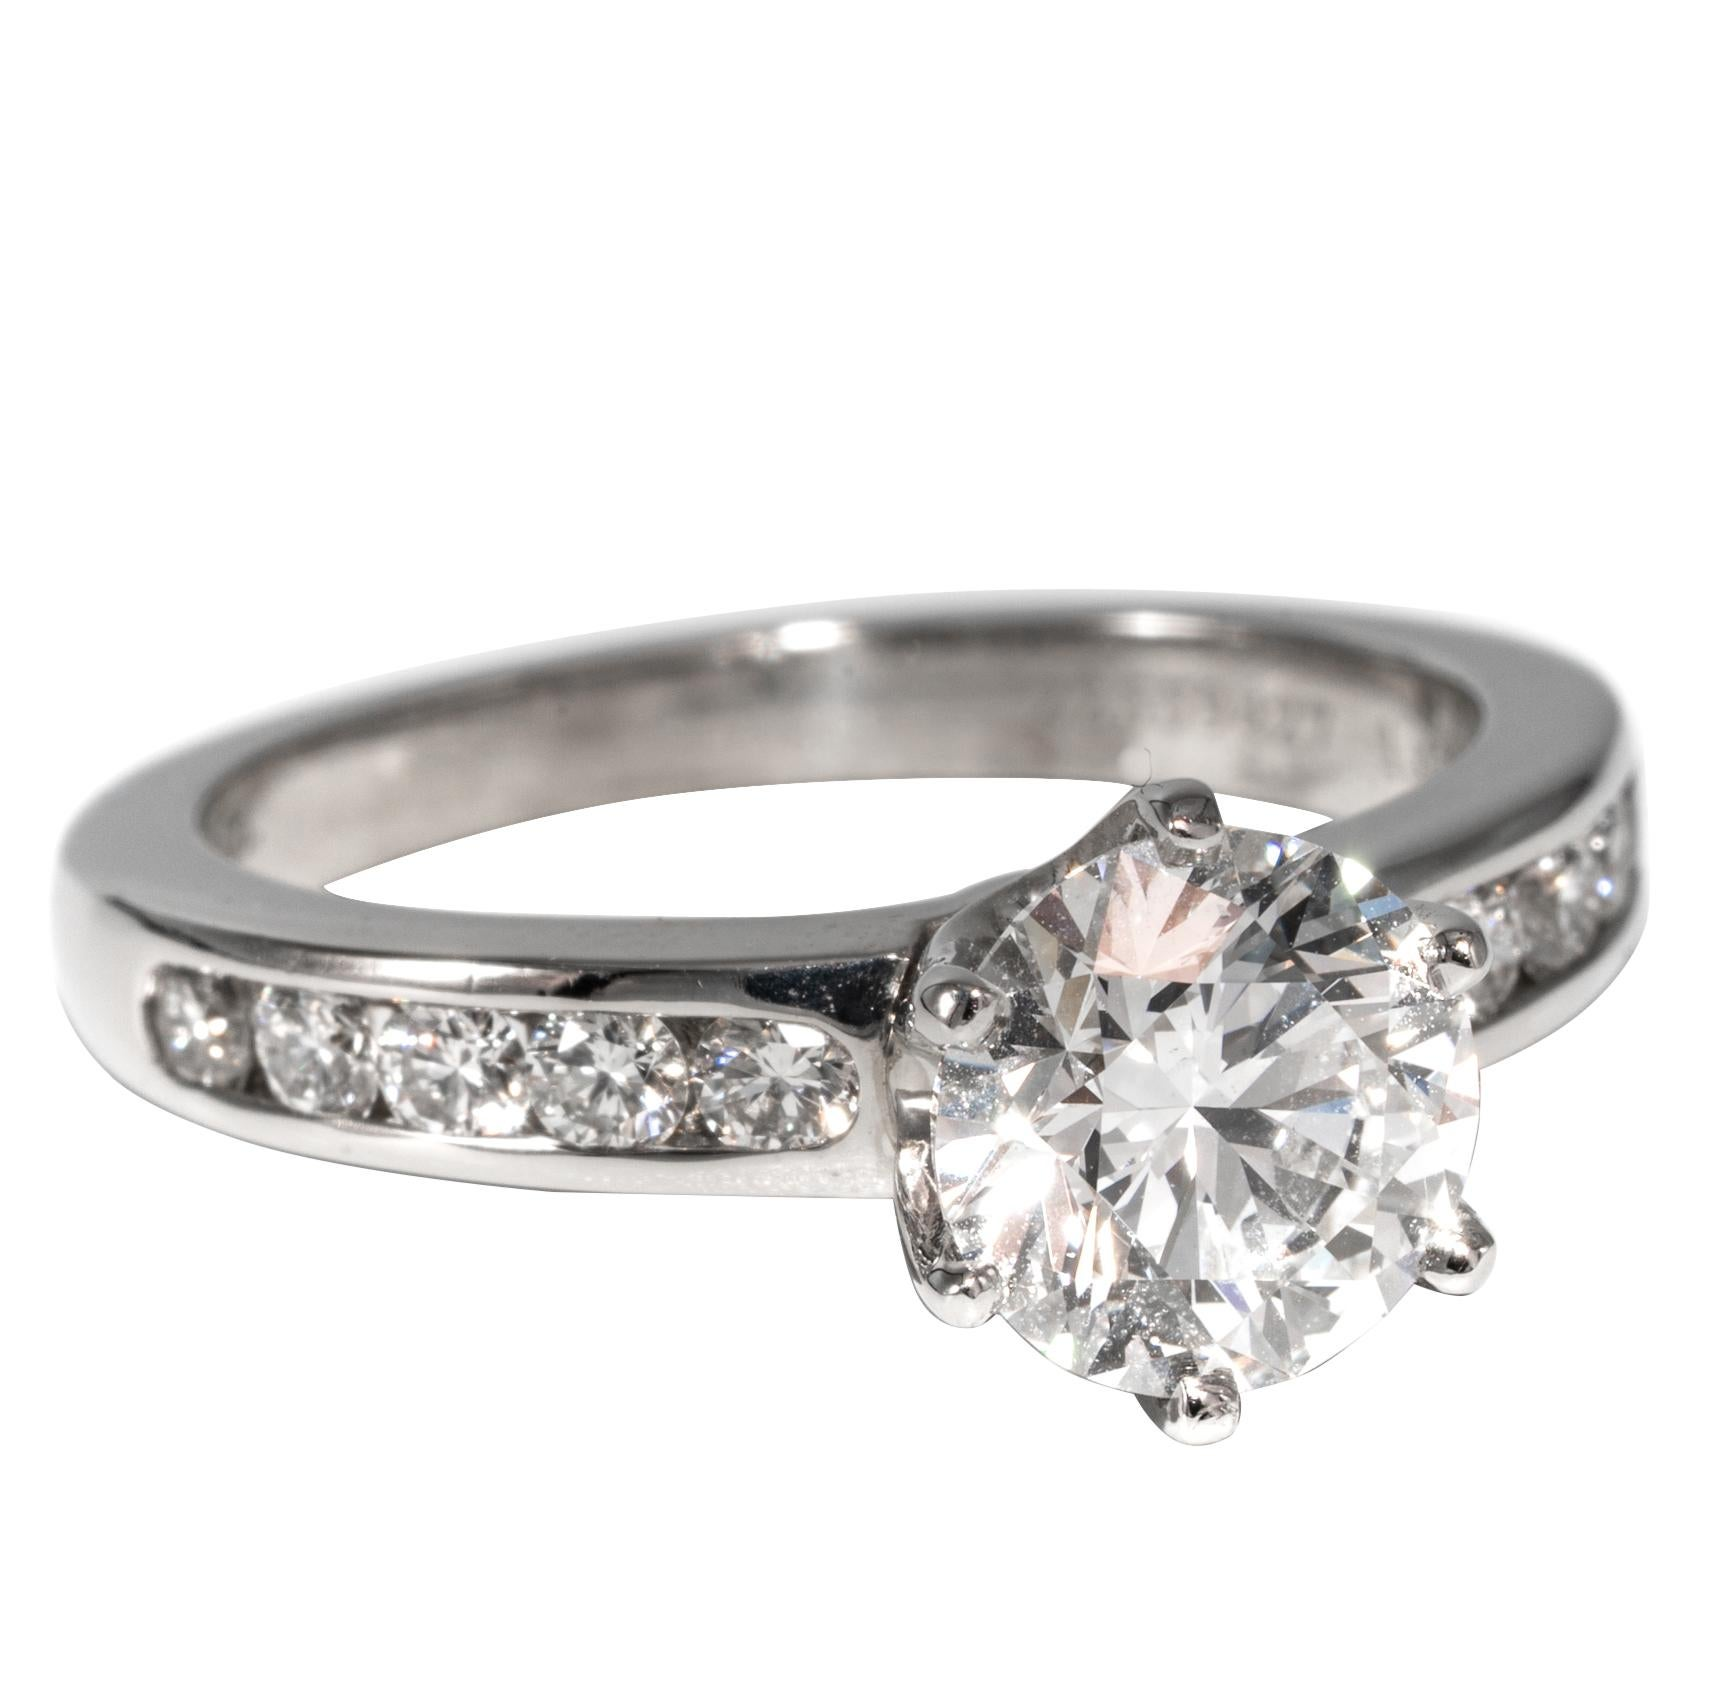 Tiffany Co Rings 734 For Sale At 1stdibs